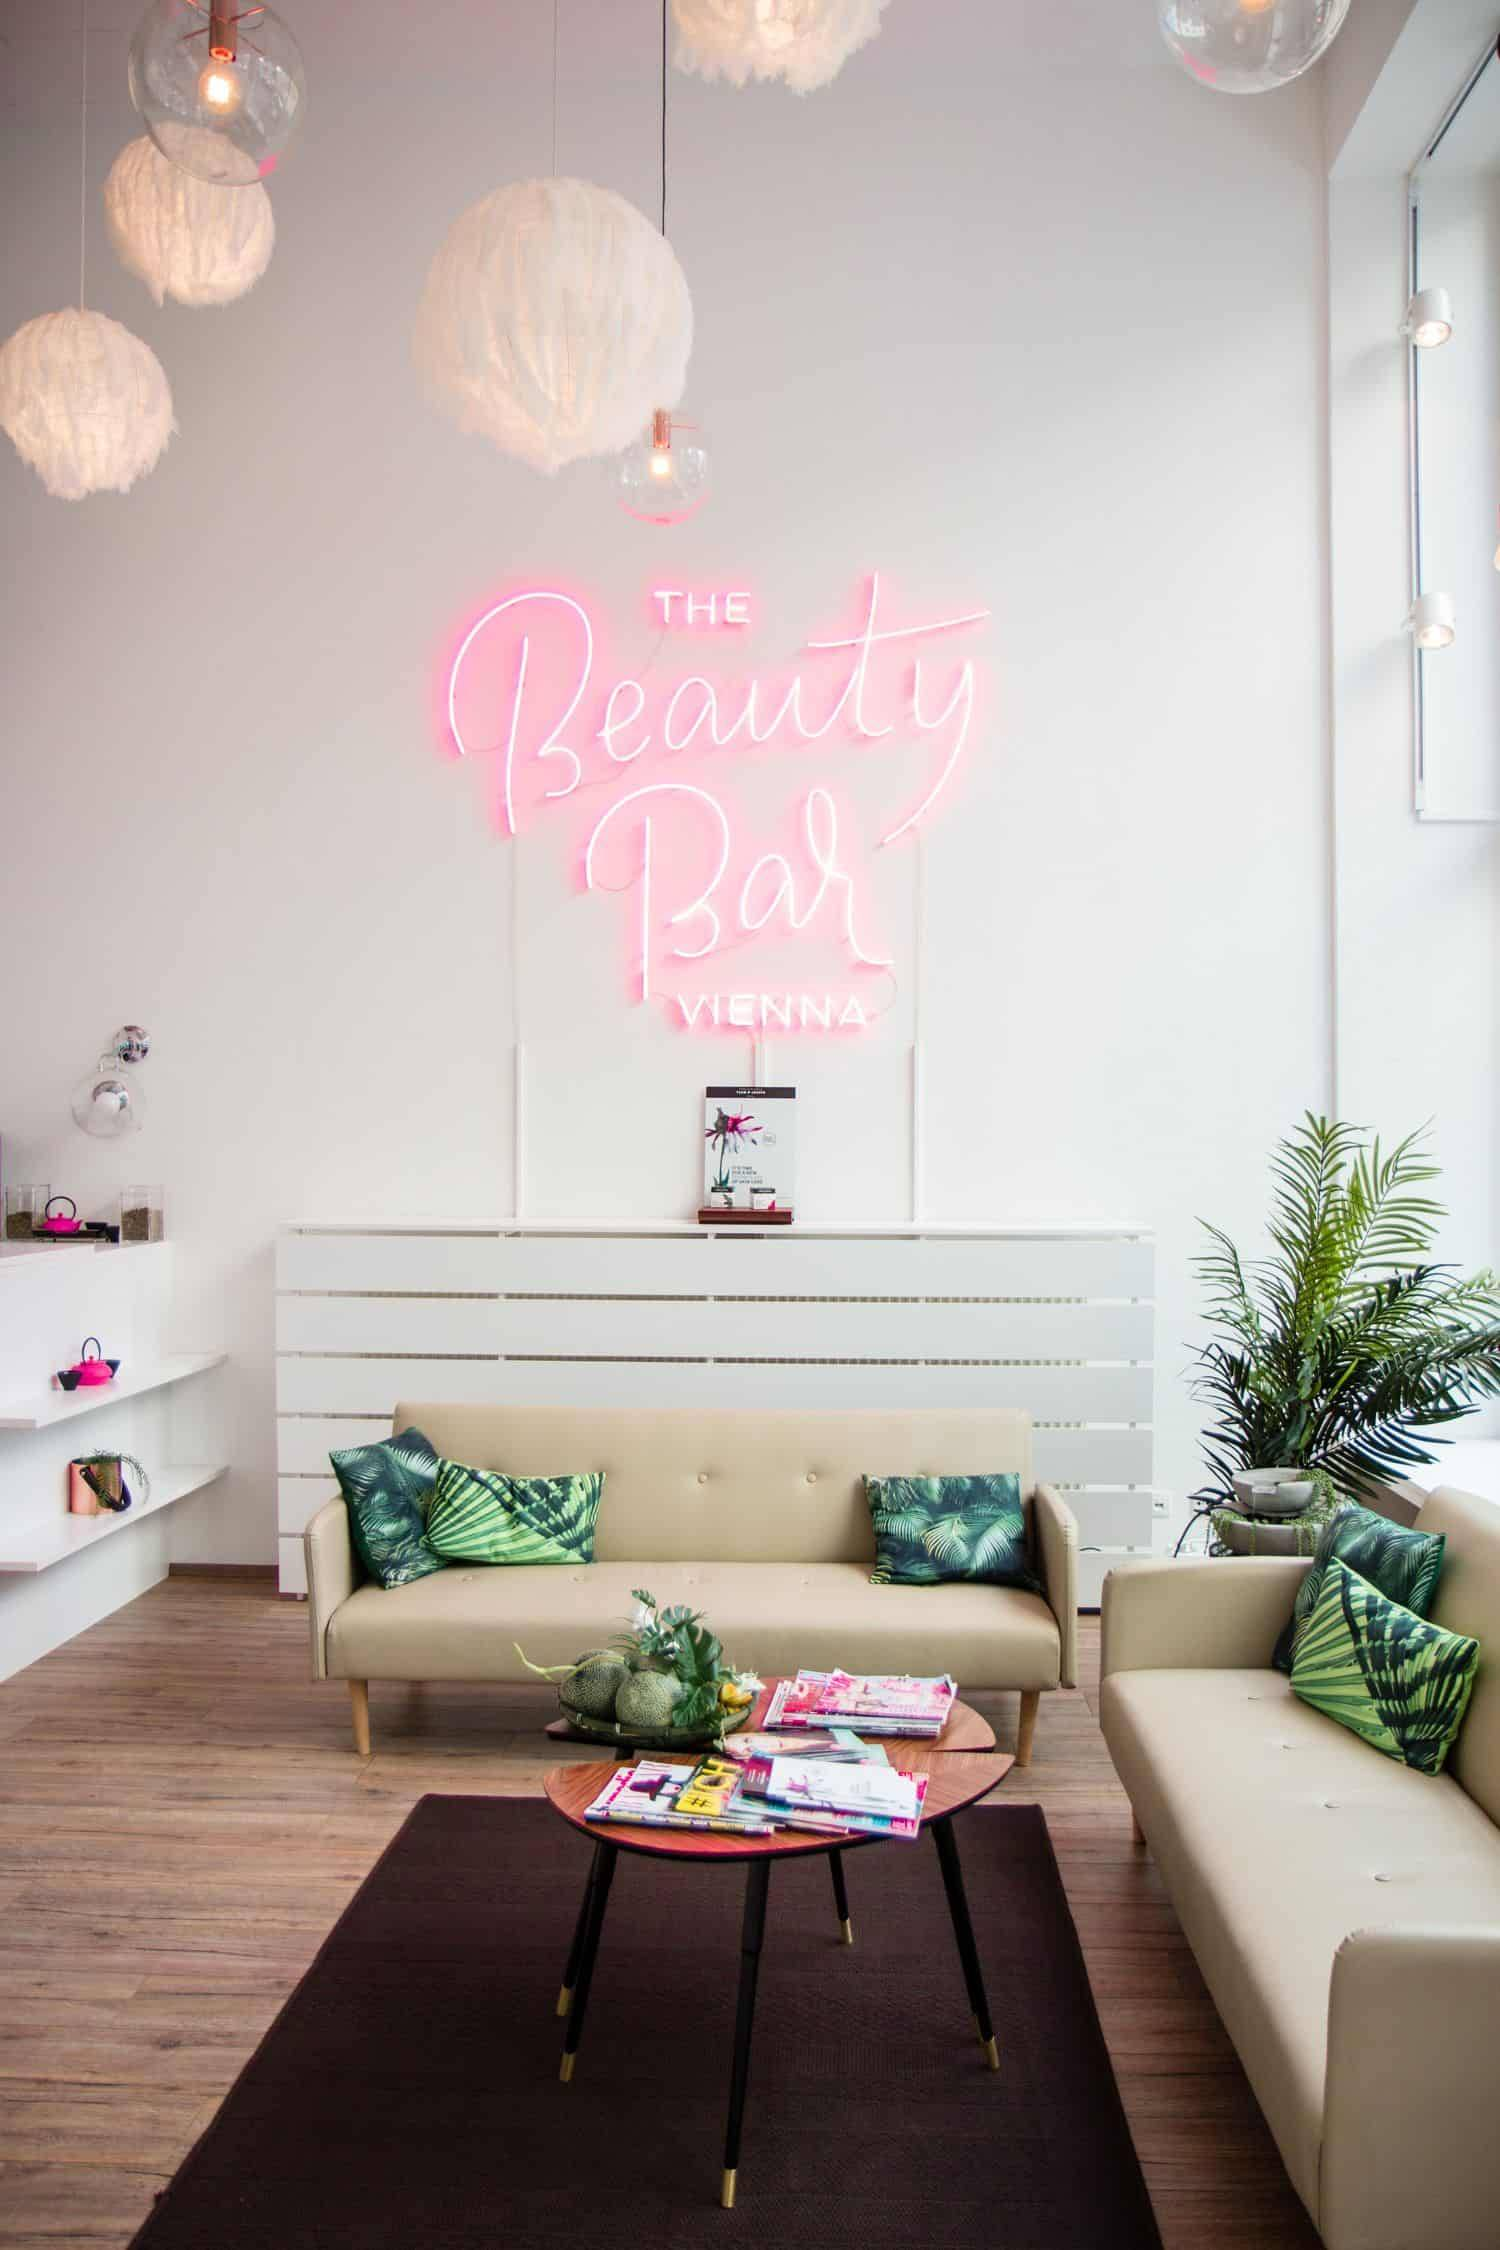 Home Decor Neon Signs Inpiration New Trendy Ways to Decorate with Neon Signs